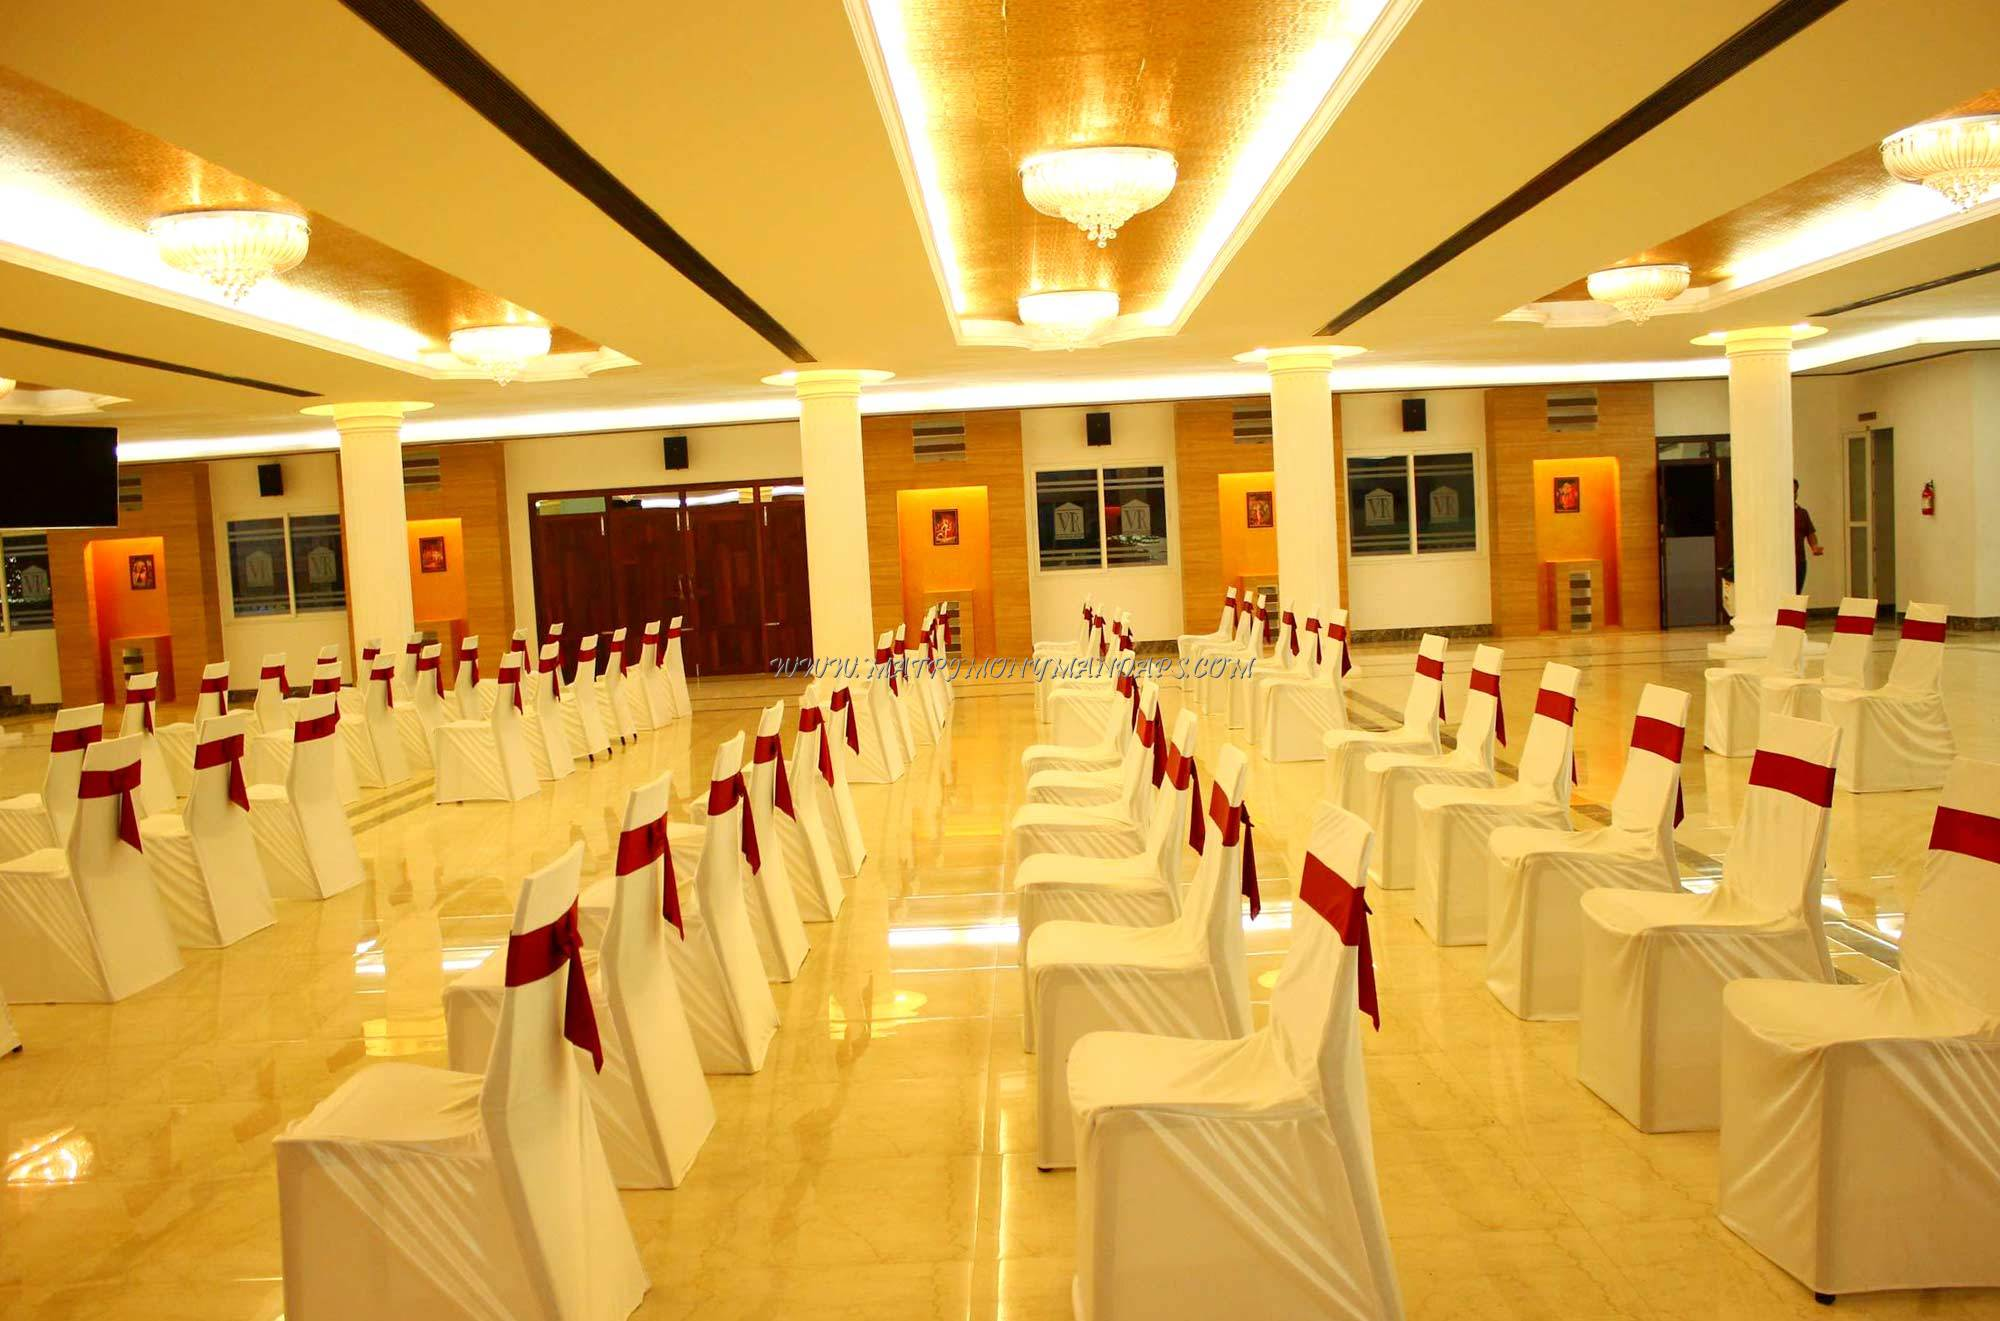 Find the availability of the Vijay Raja Thirumana Mandapam (A/C) in Medavakkam, Chennai and avail special offers